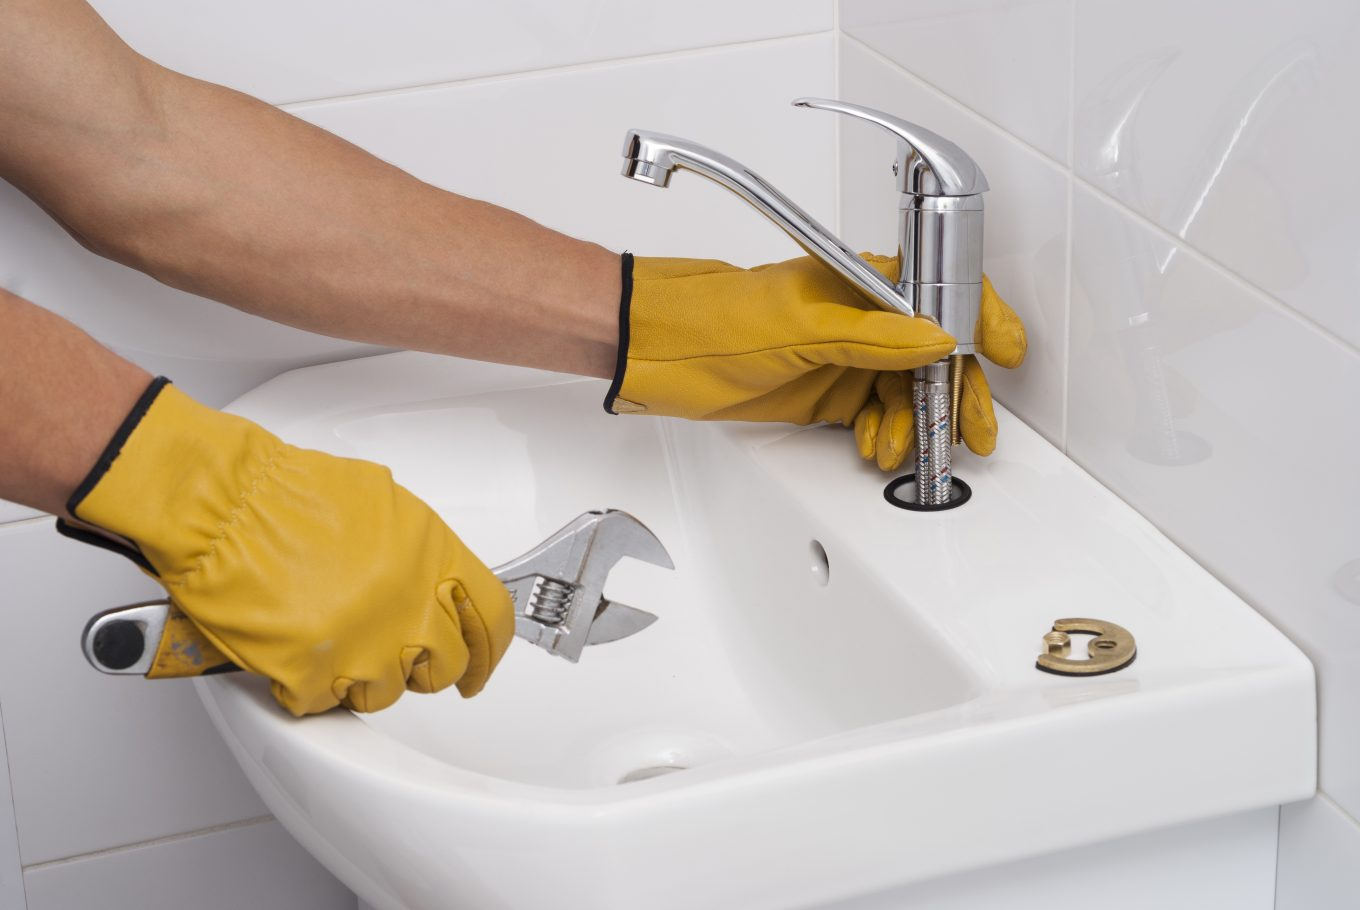 plumber installs a new faucet for a sink